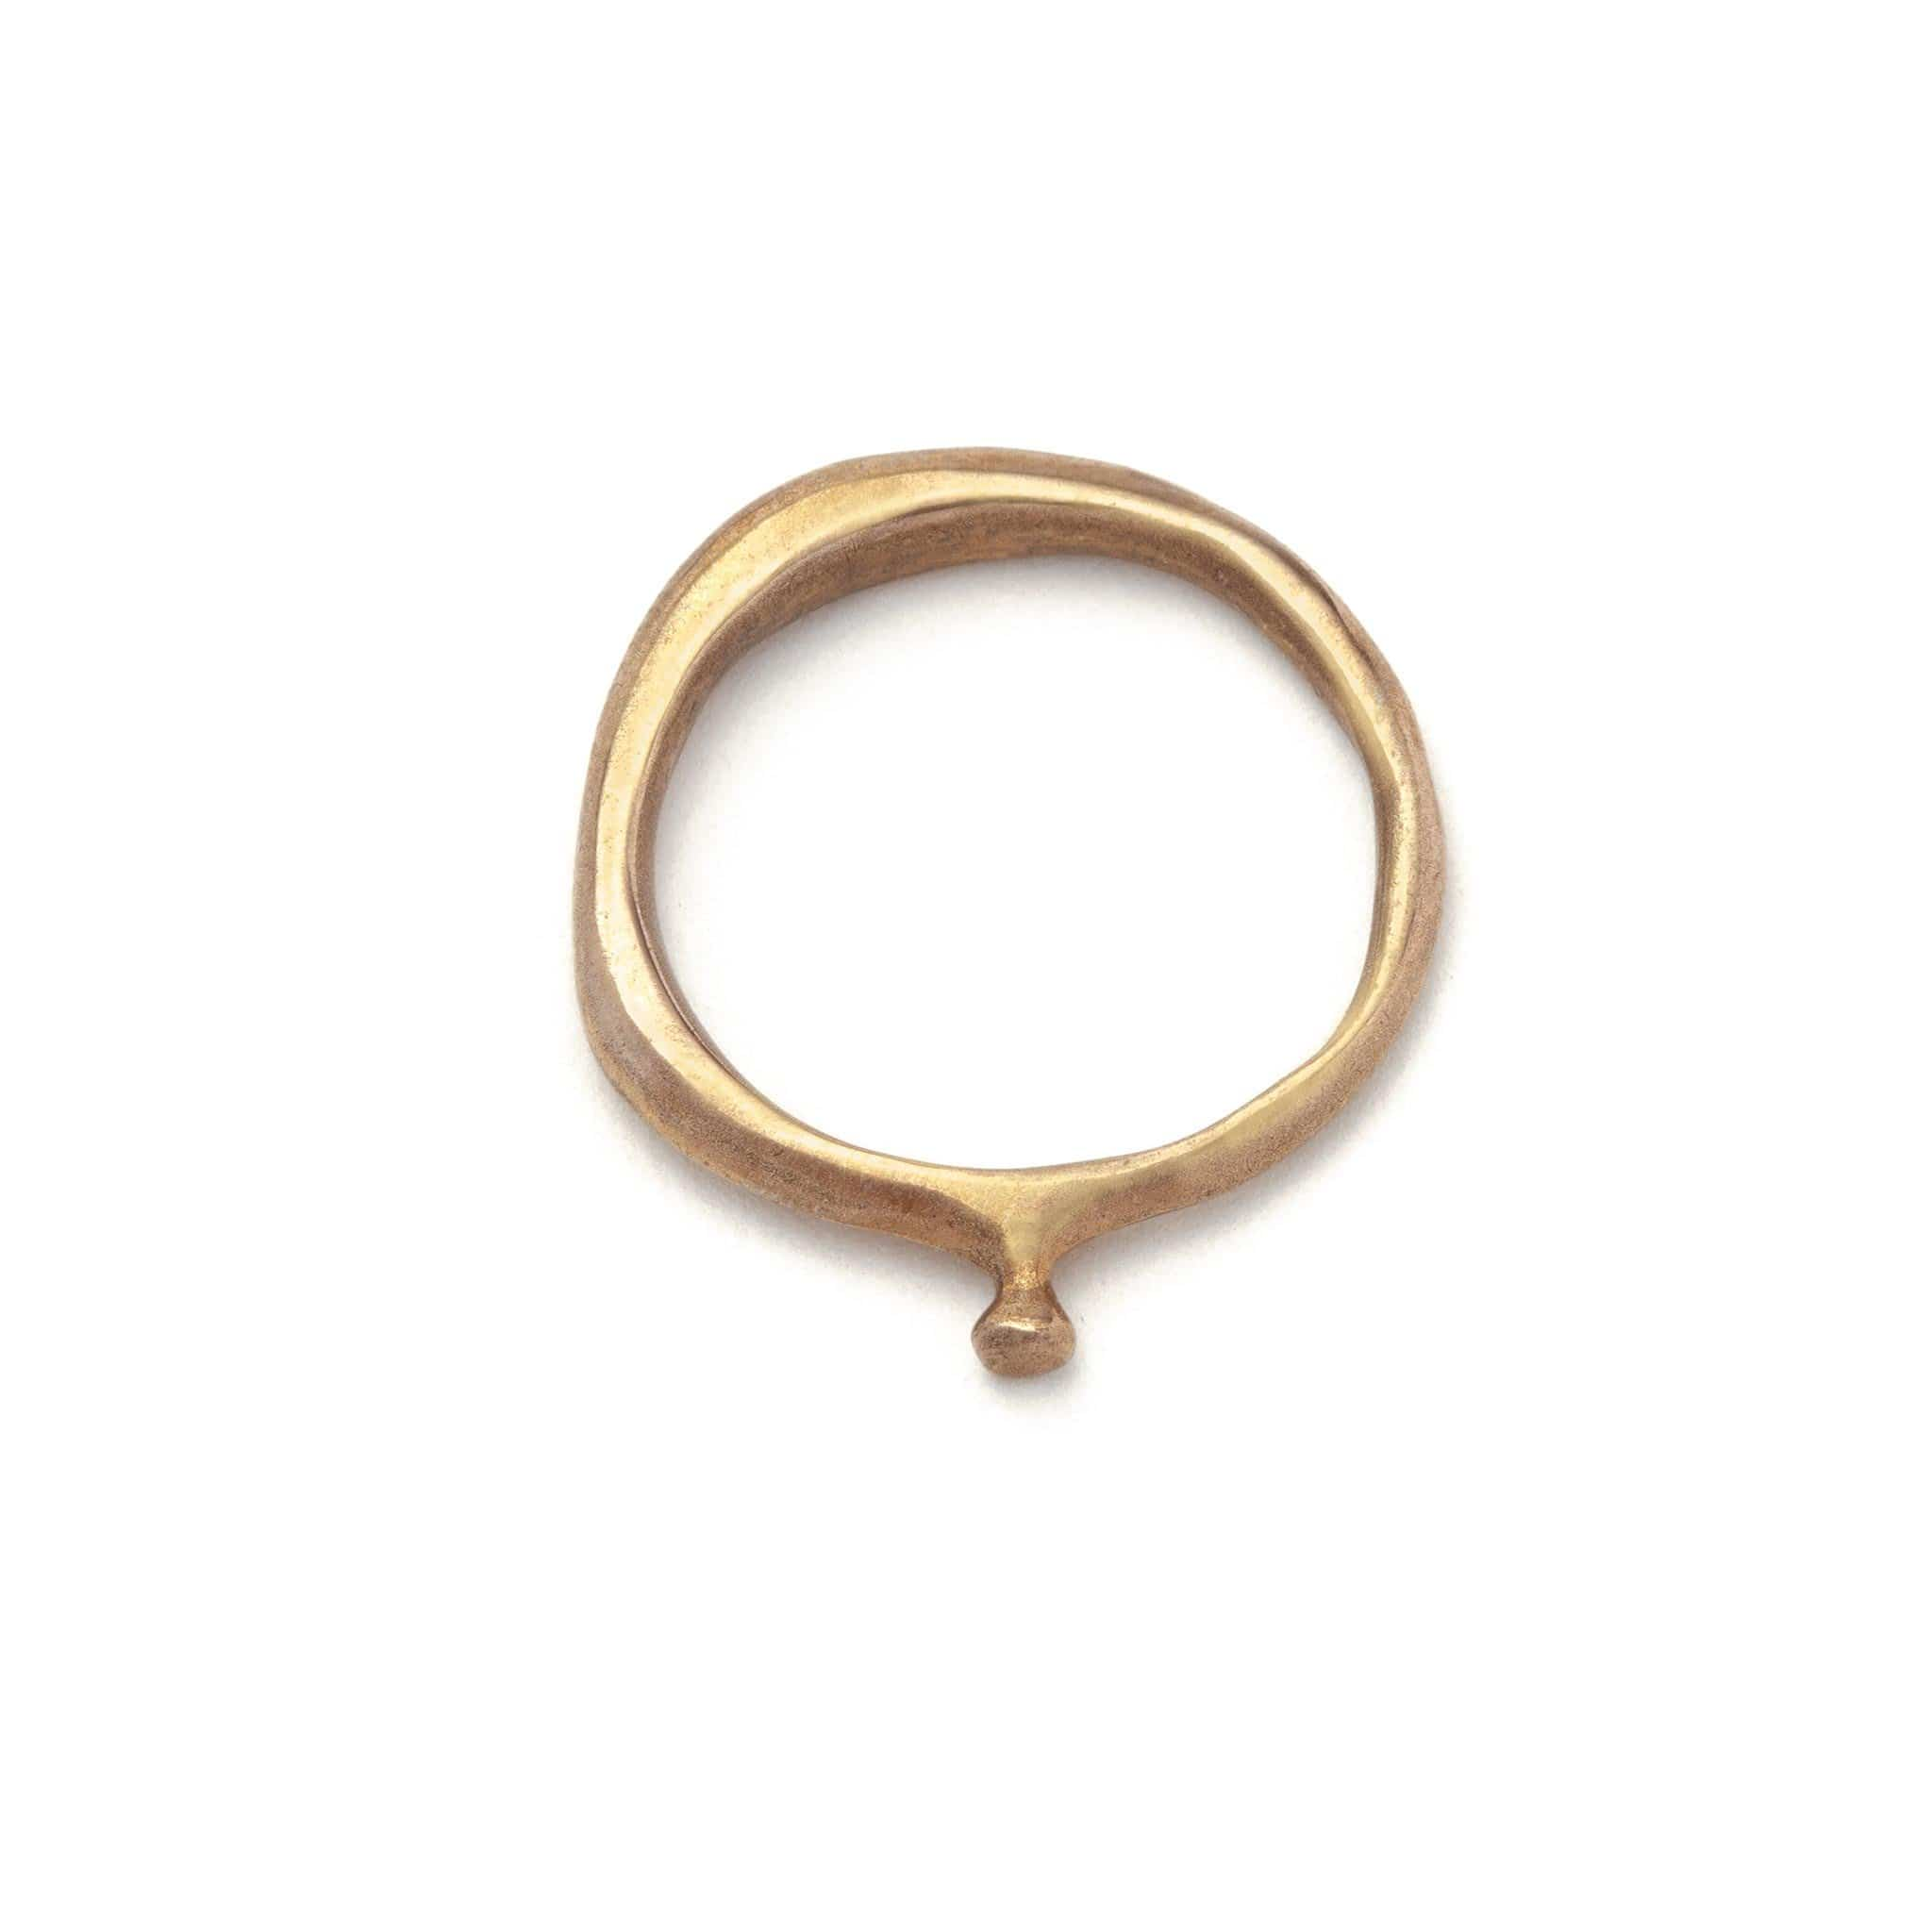 Julie Cohn Design. Bronze Tiny Solitaire ring. Handcrafted in the USA. Bronze artisan jewelry.